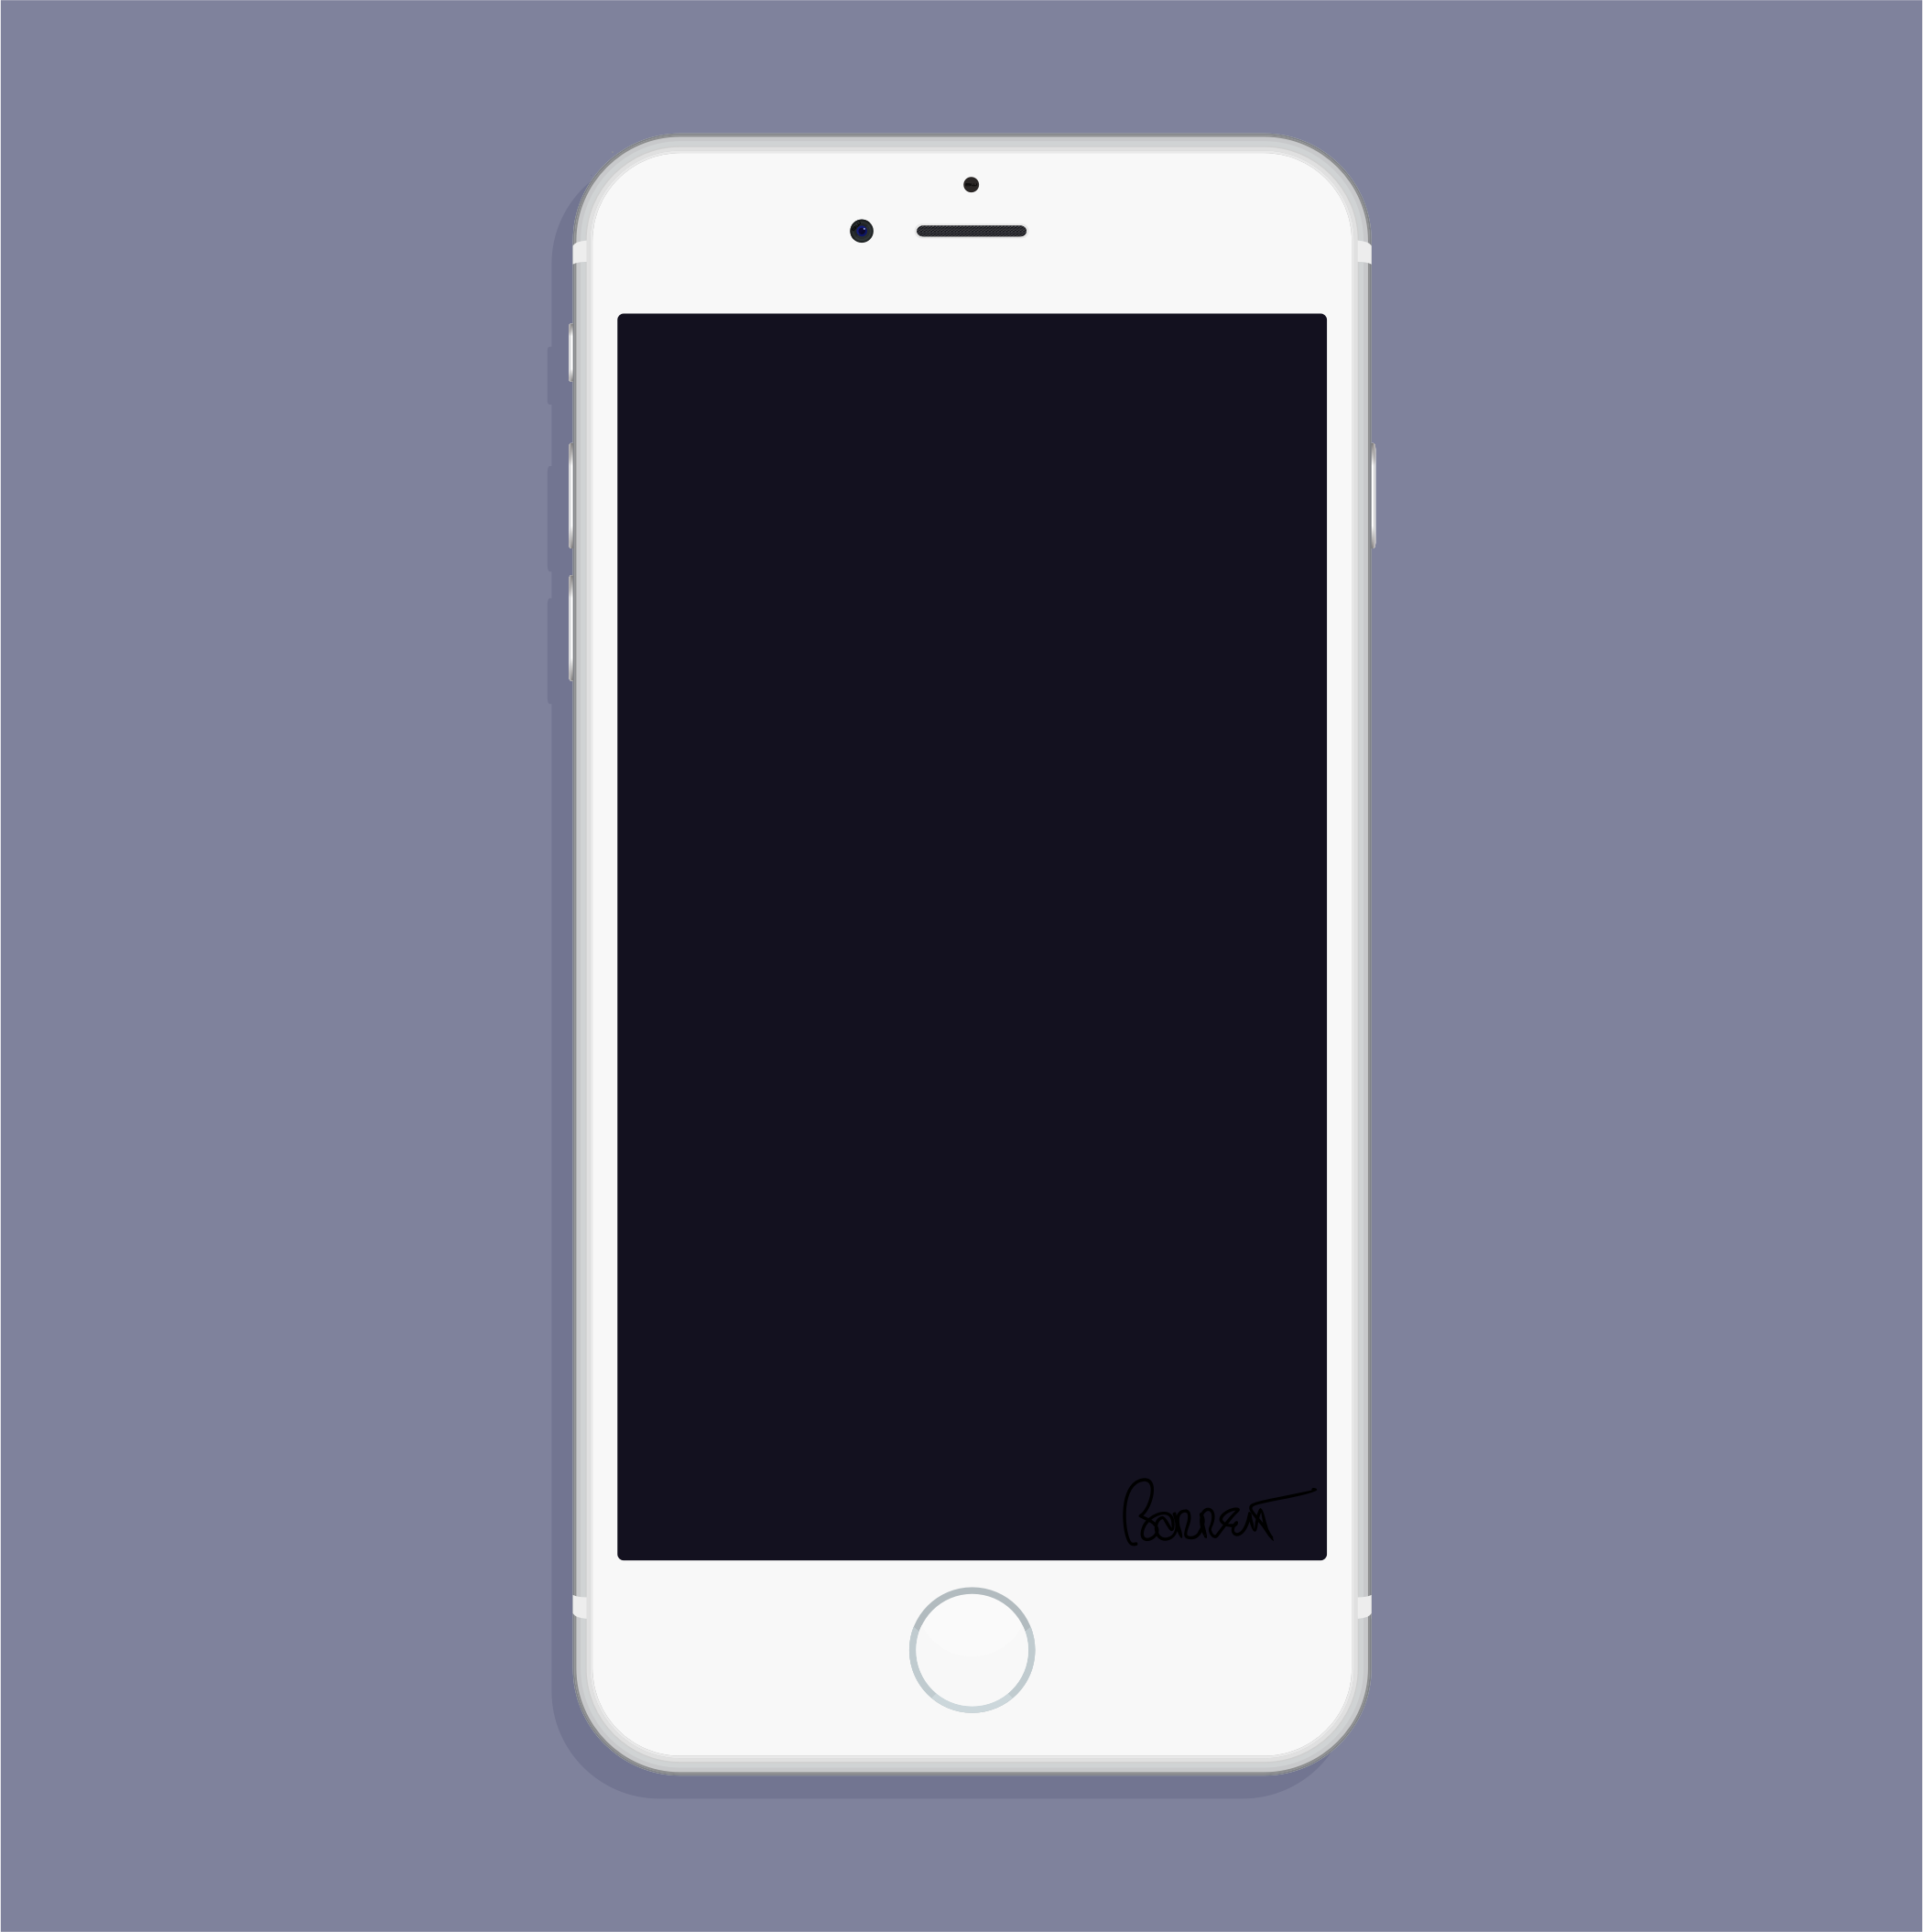 White New iPhone 6 by barrettward